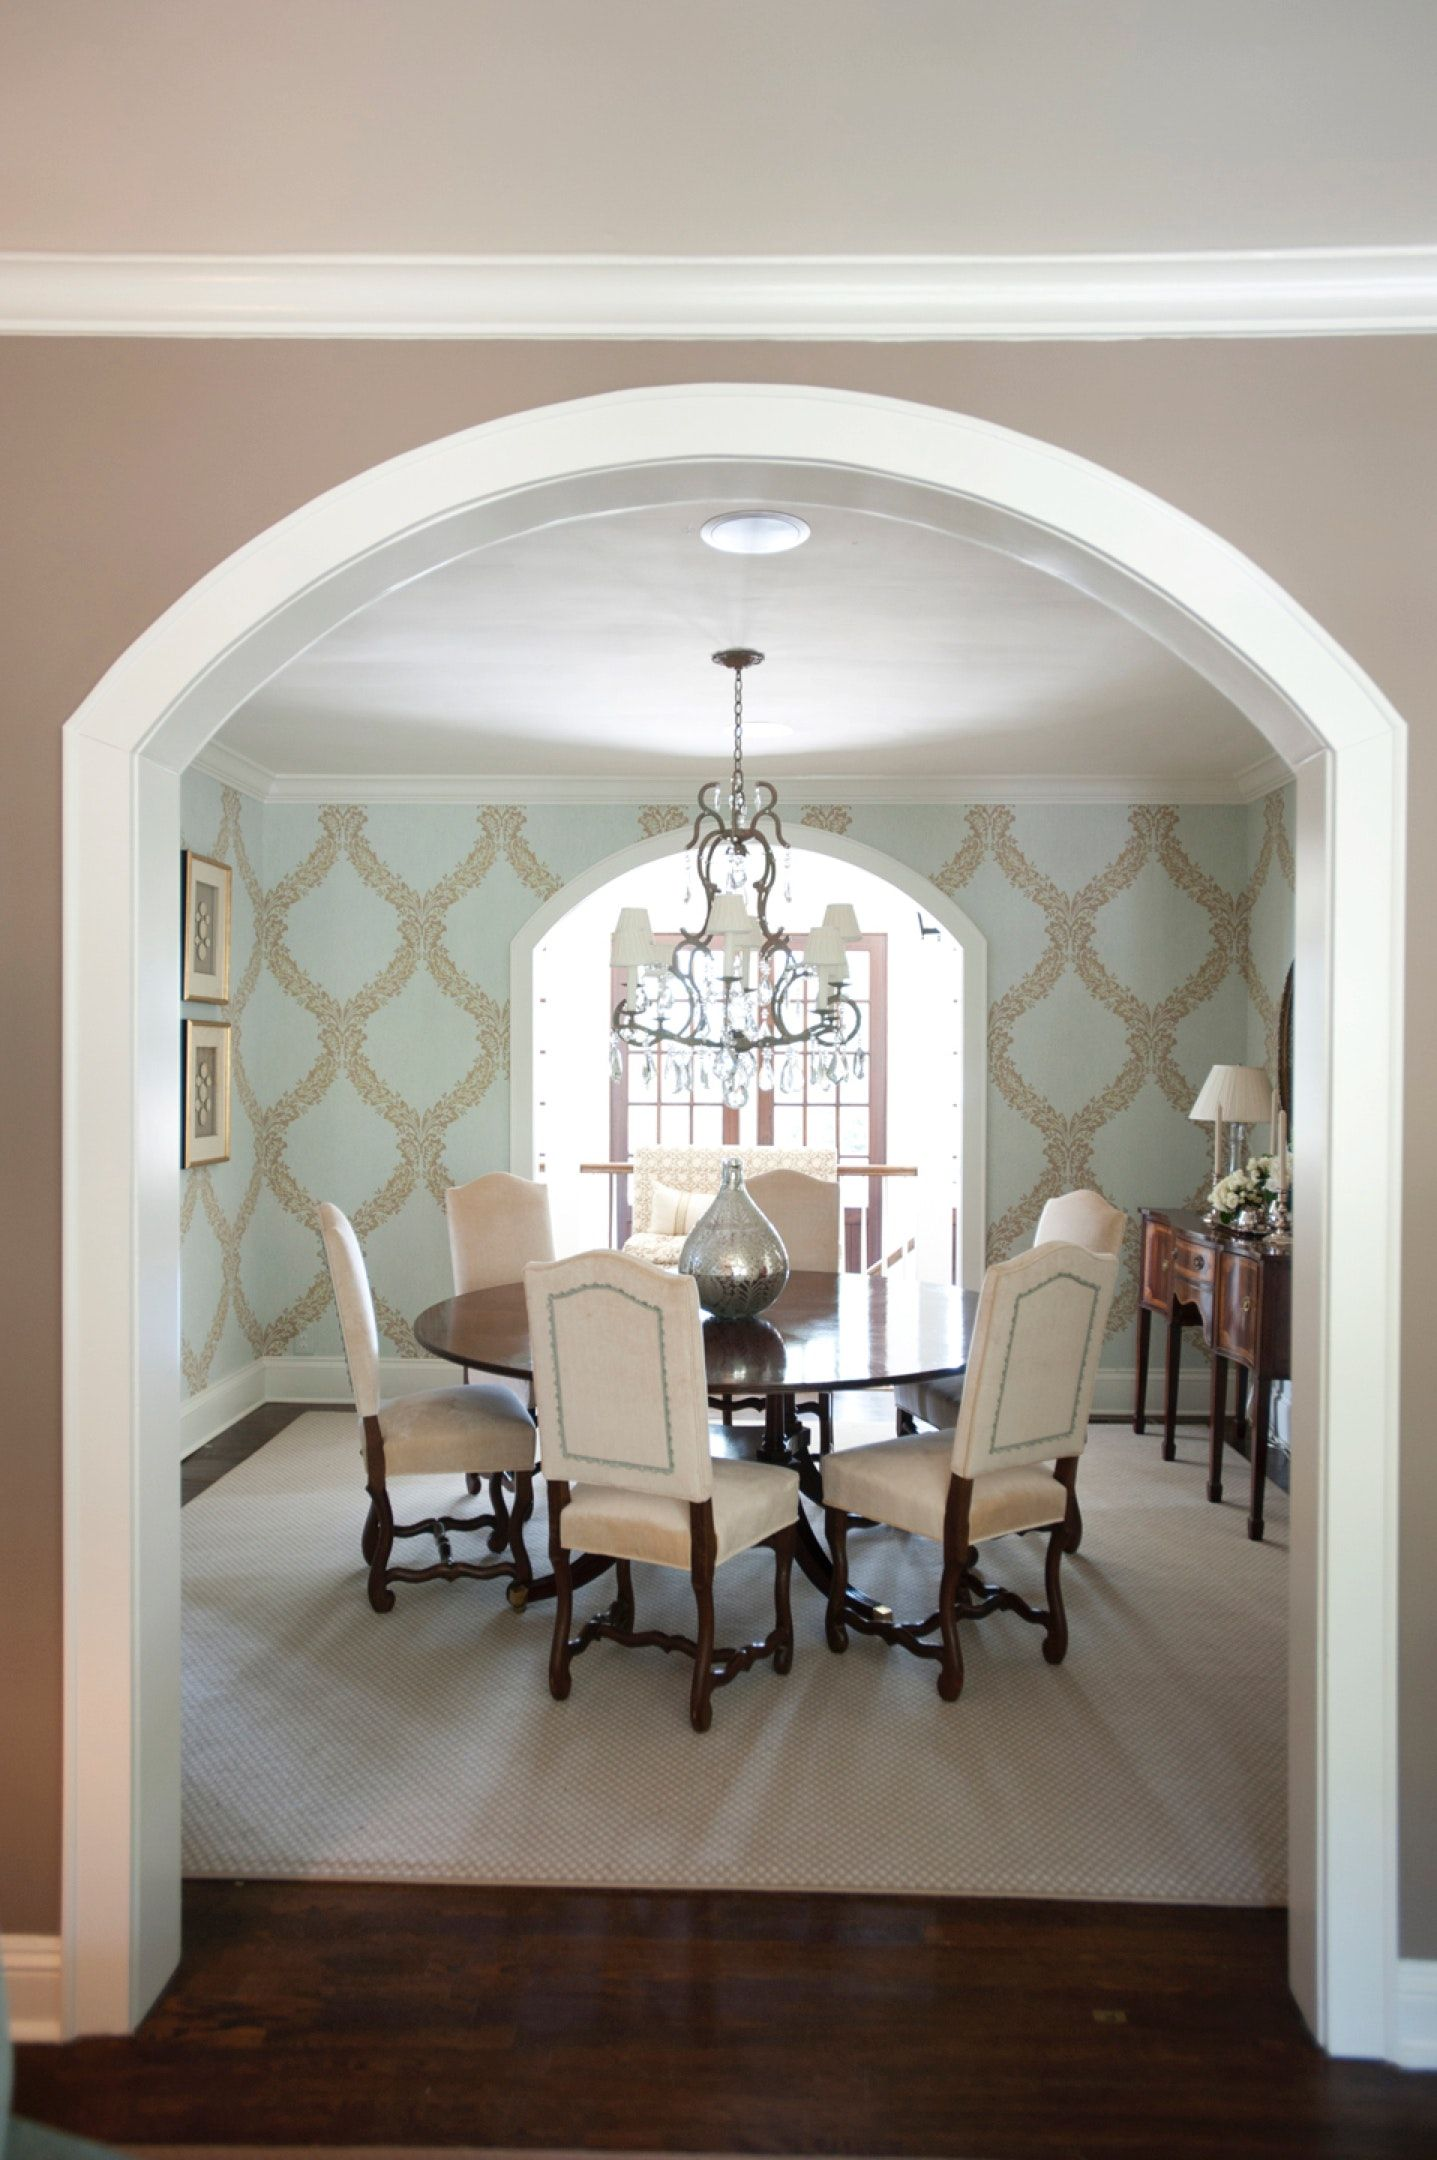 Archway Leading To Dining Room With Custom Wallpaper And Crystal Chandelier Archways In Homes Dining Room Design Dining Design